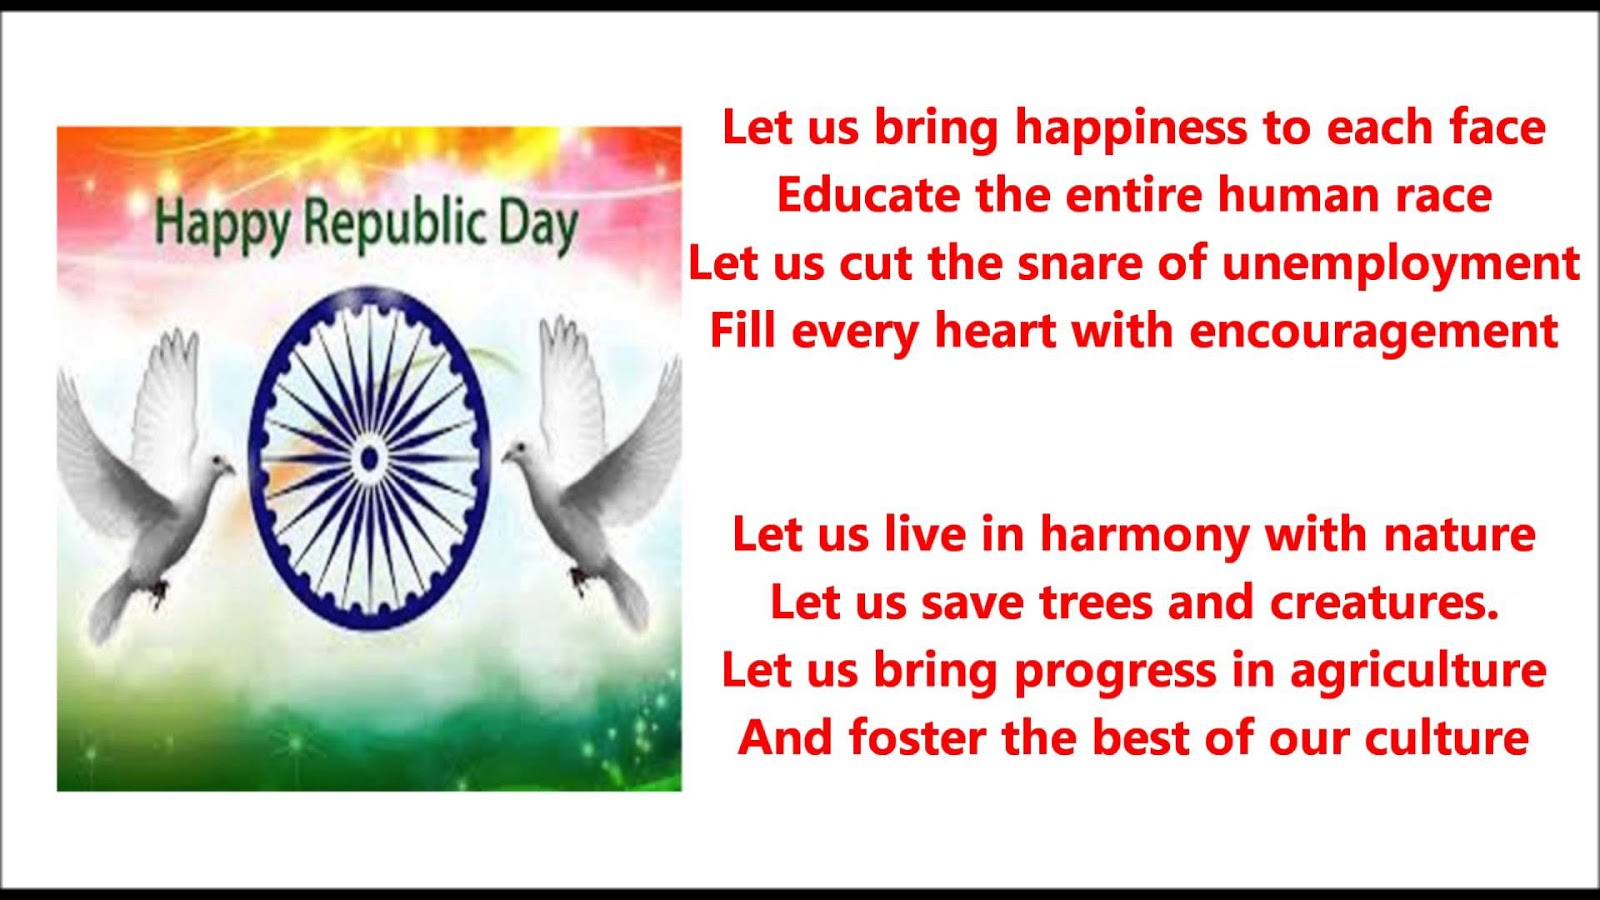 republic day speech essay poems for 6th 7th 8th 9th 10th class republic day poems for 7th class students kids childs